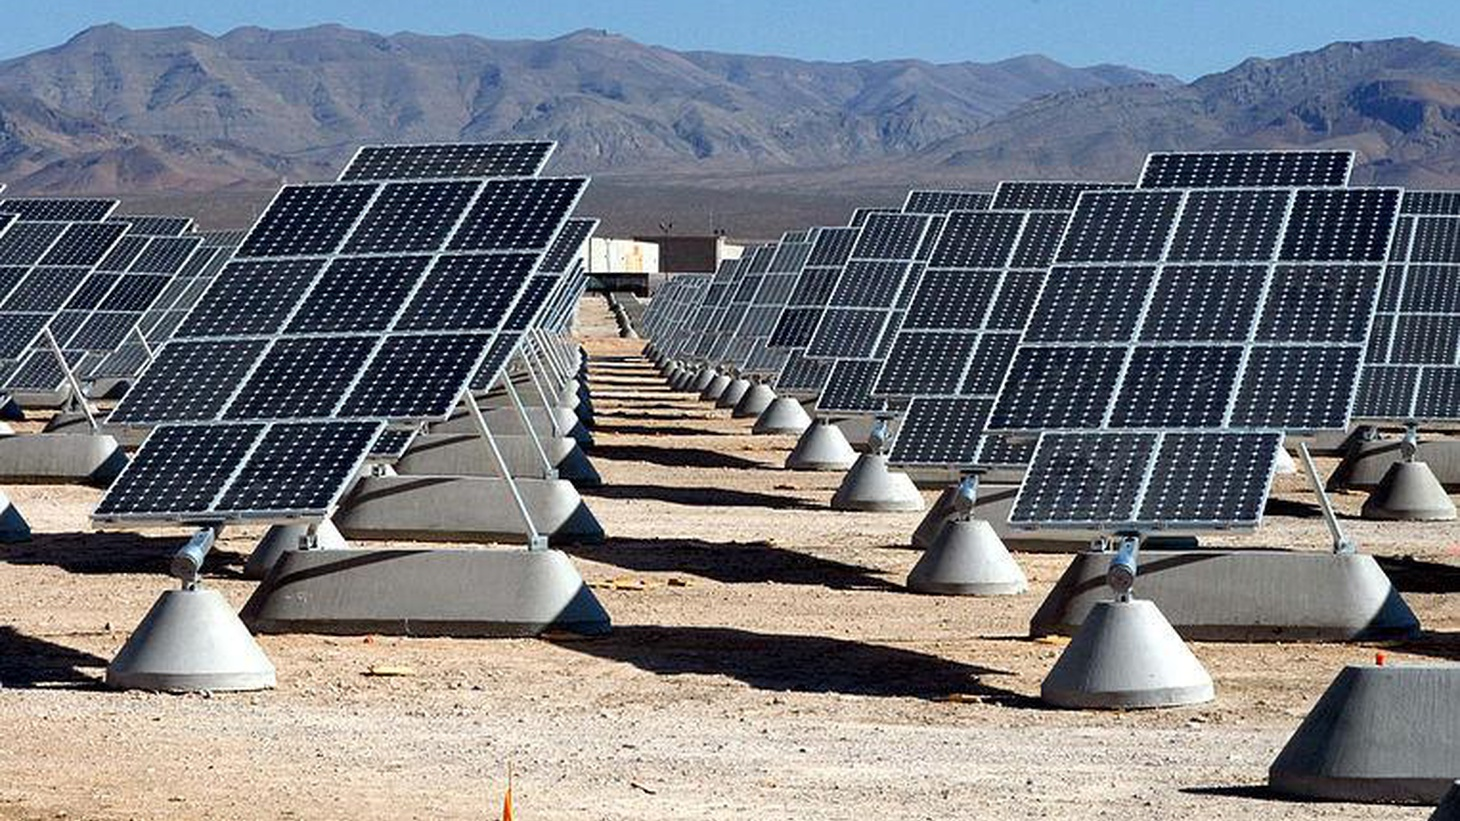 Five years after the President's initiative for large-scale solar plants, just three are in operation. We hear about the changing dynamics of renewable energy.